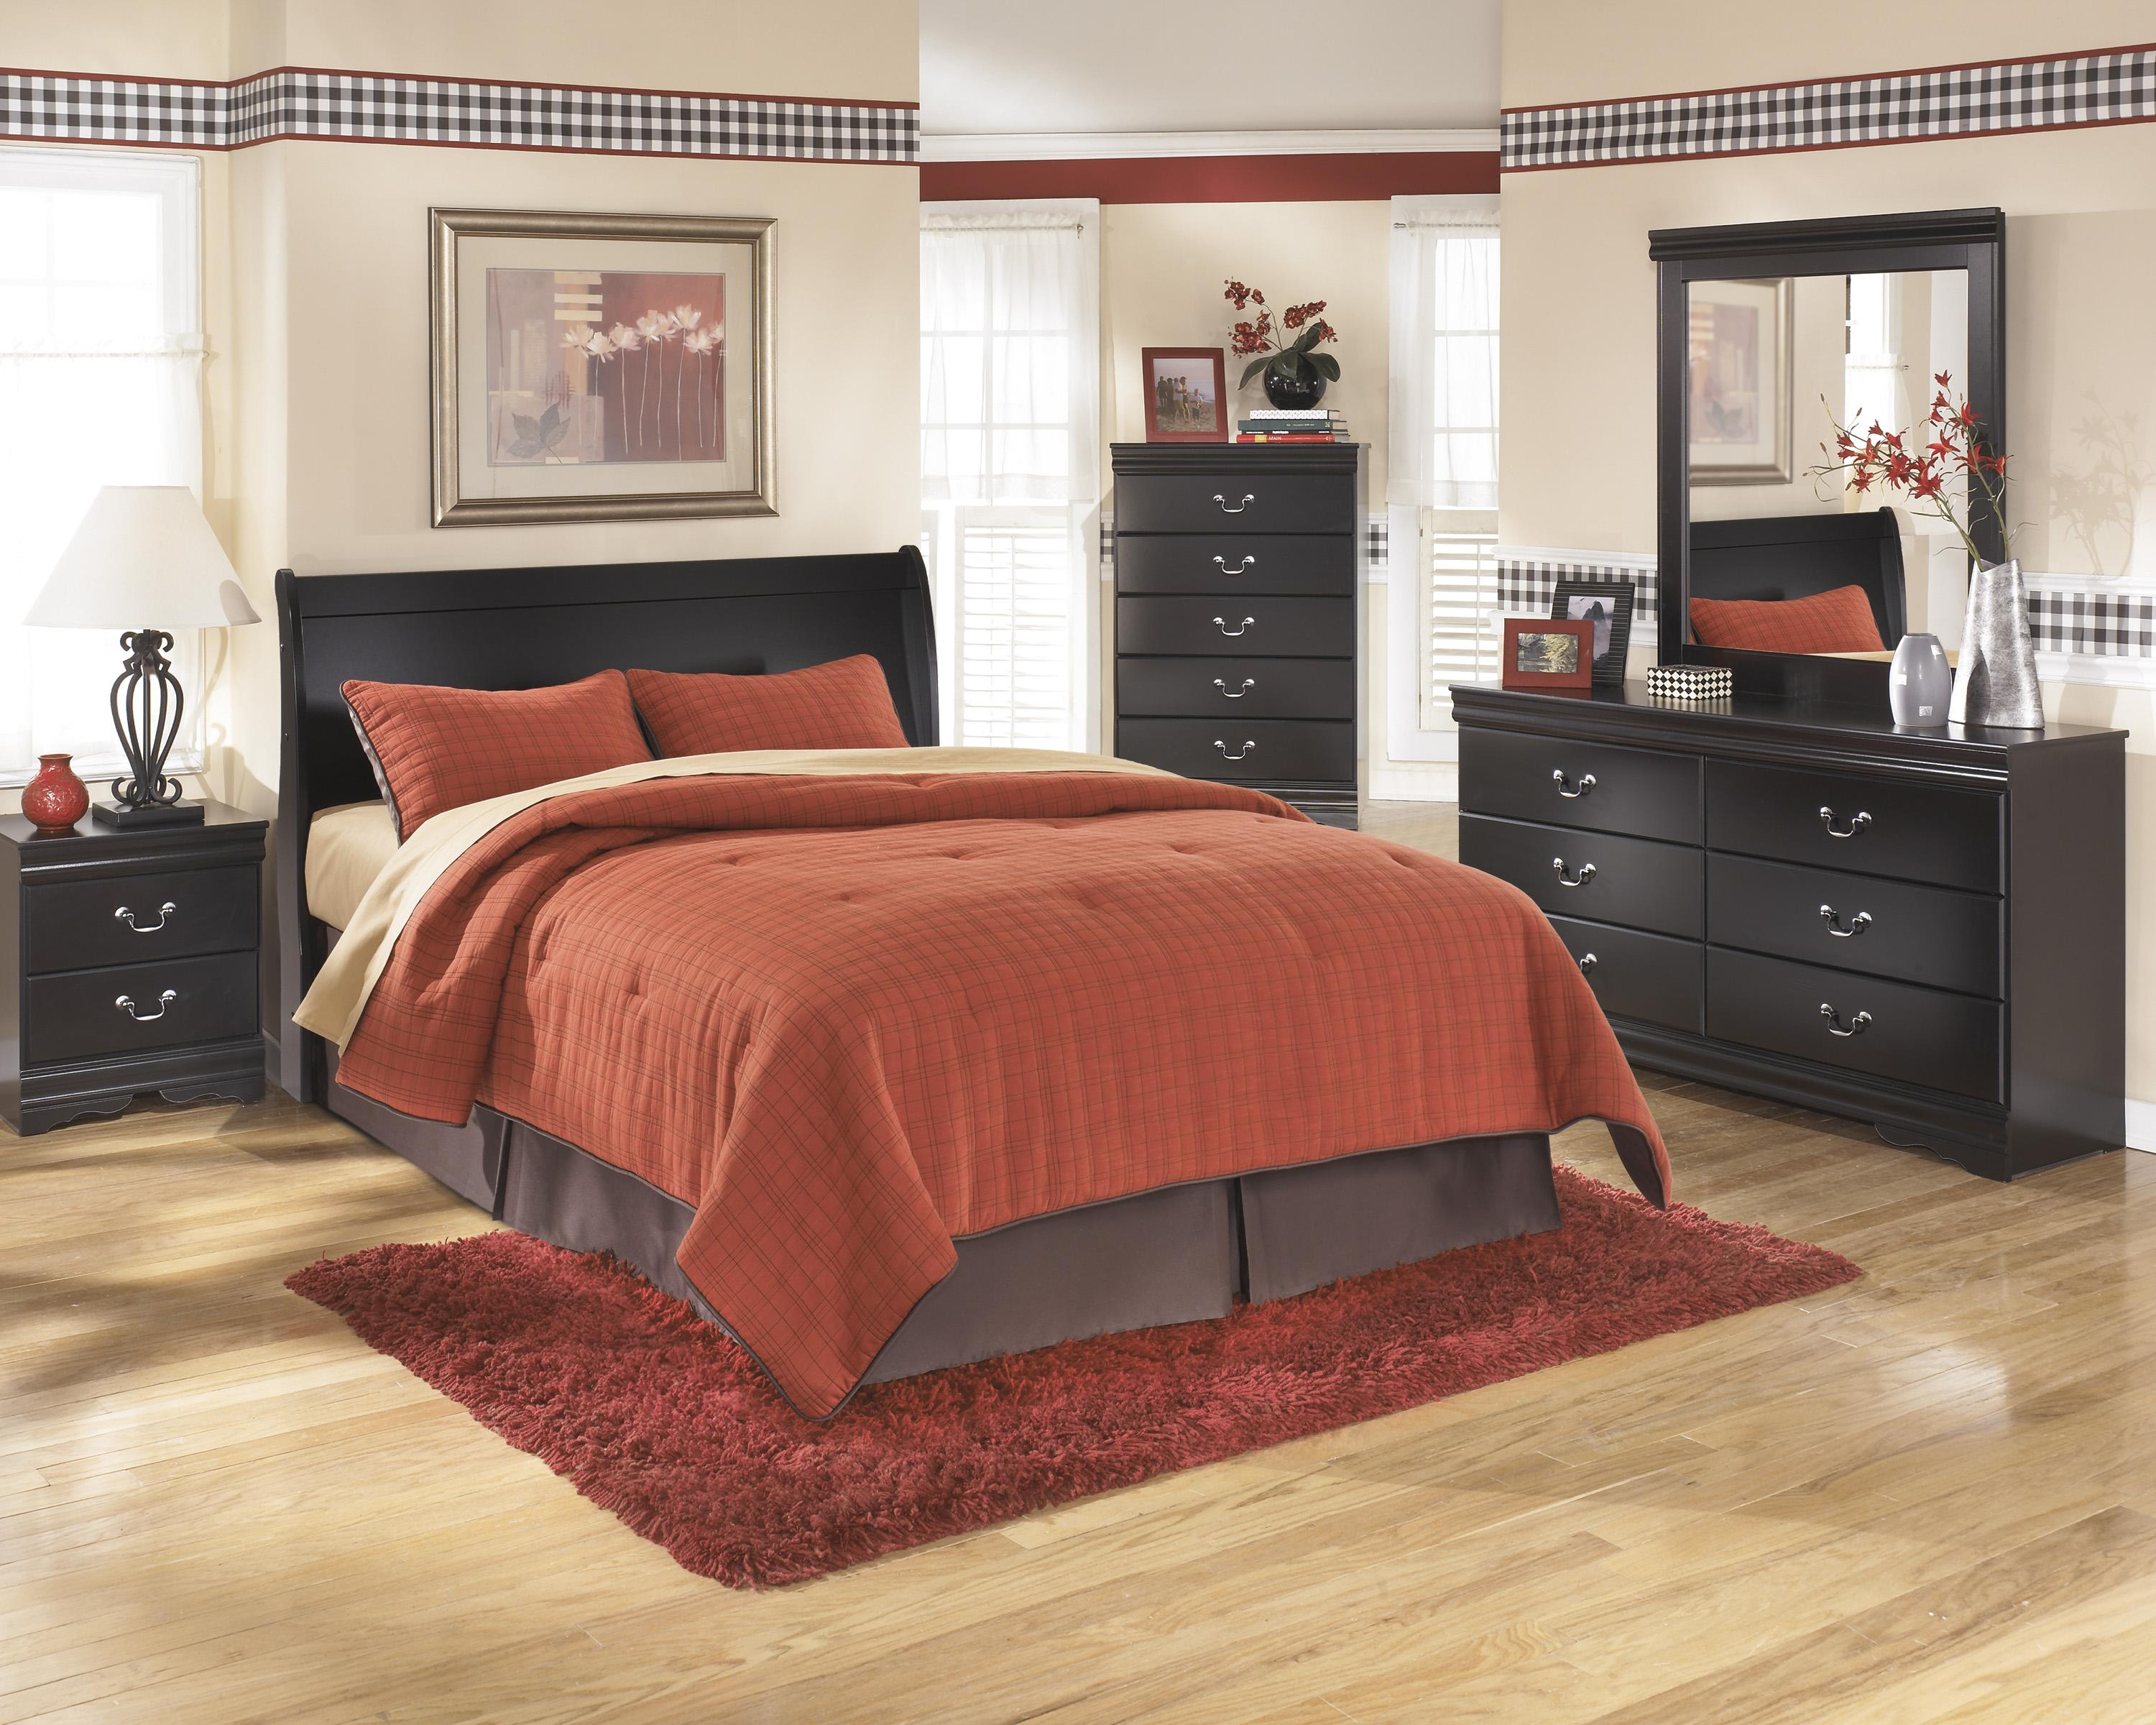 Ashley signature design huey vineyard queen bedroom group for Bedroom furniture groups